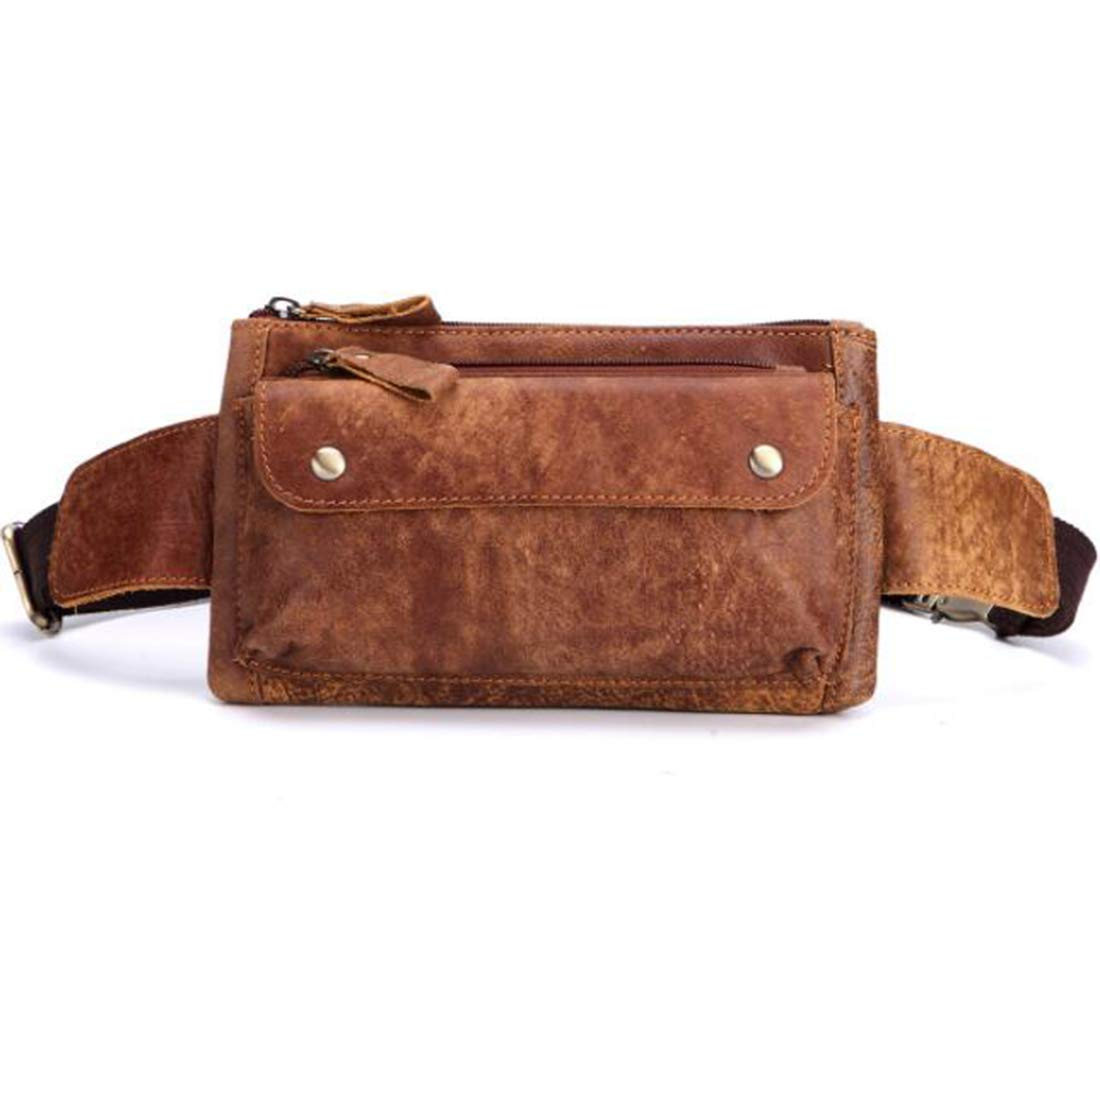 Carriemeow Body Bag Waist Bag West Pouch 2way Mens Multifunction Cow Leather Made Color : Brown